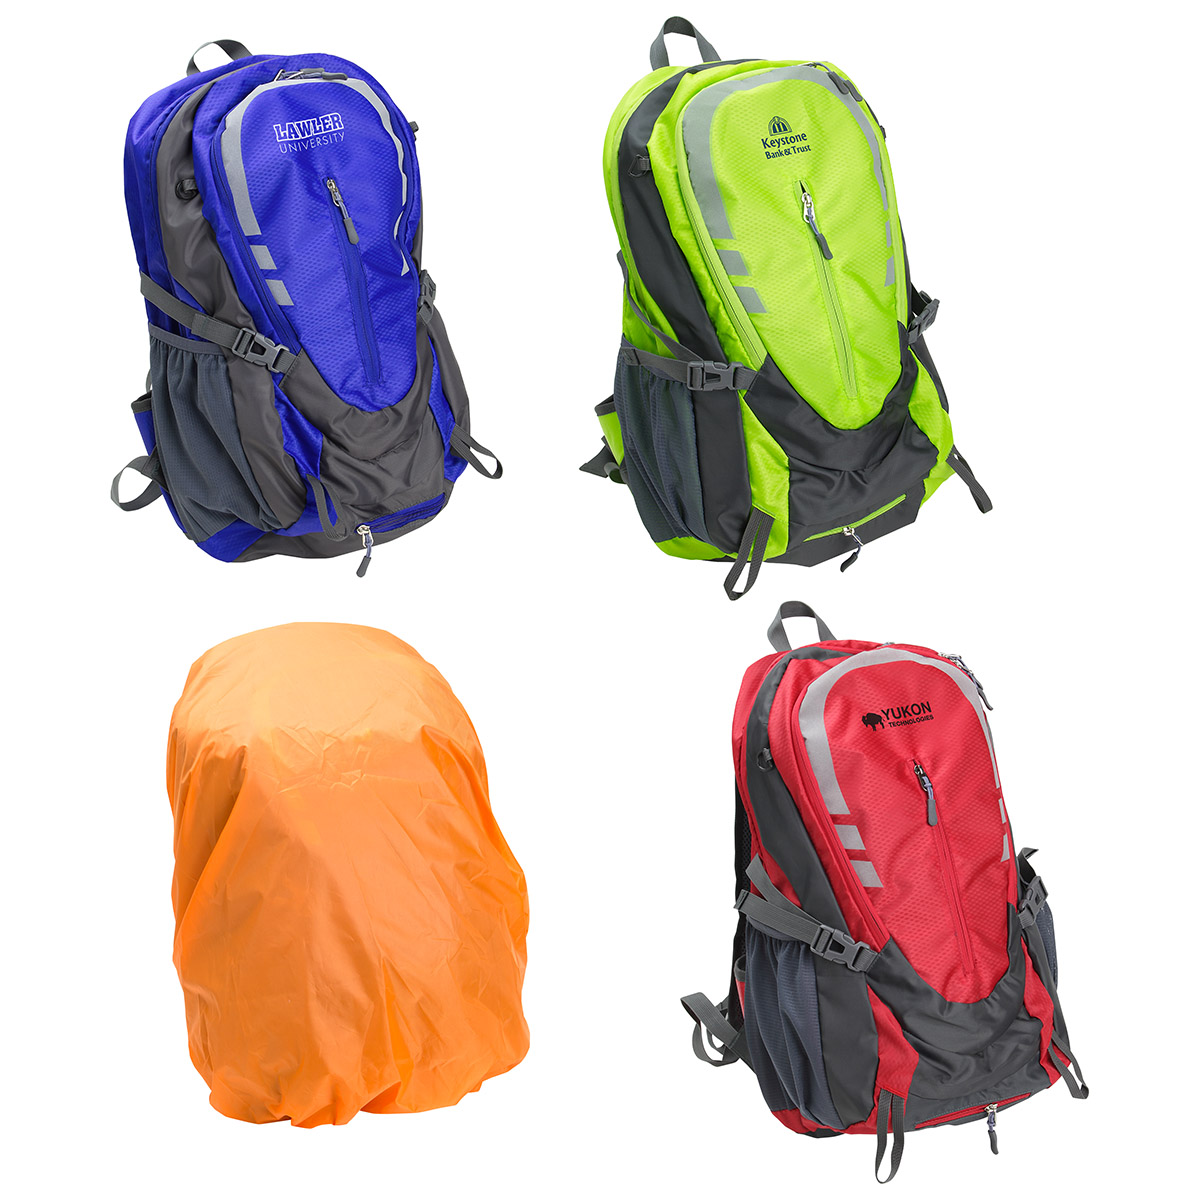 Alpine Hiking Backpack 35L with Rain Cover, WBA-AB17 - 1 Colour Imprint